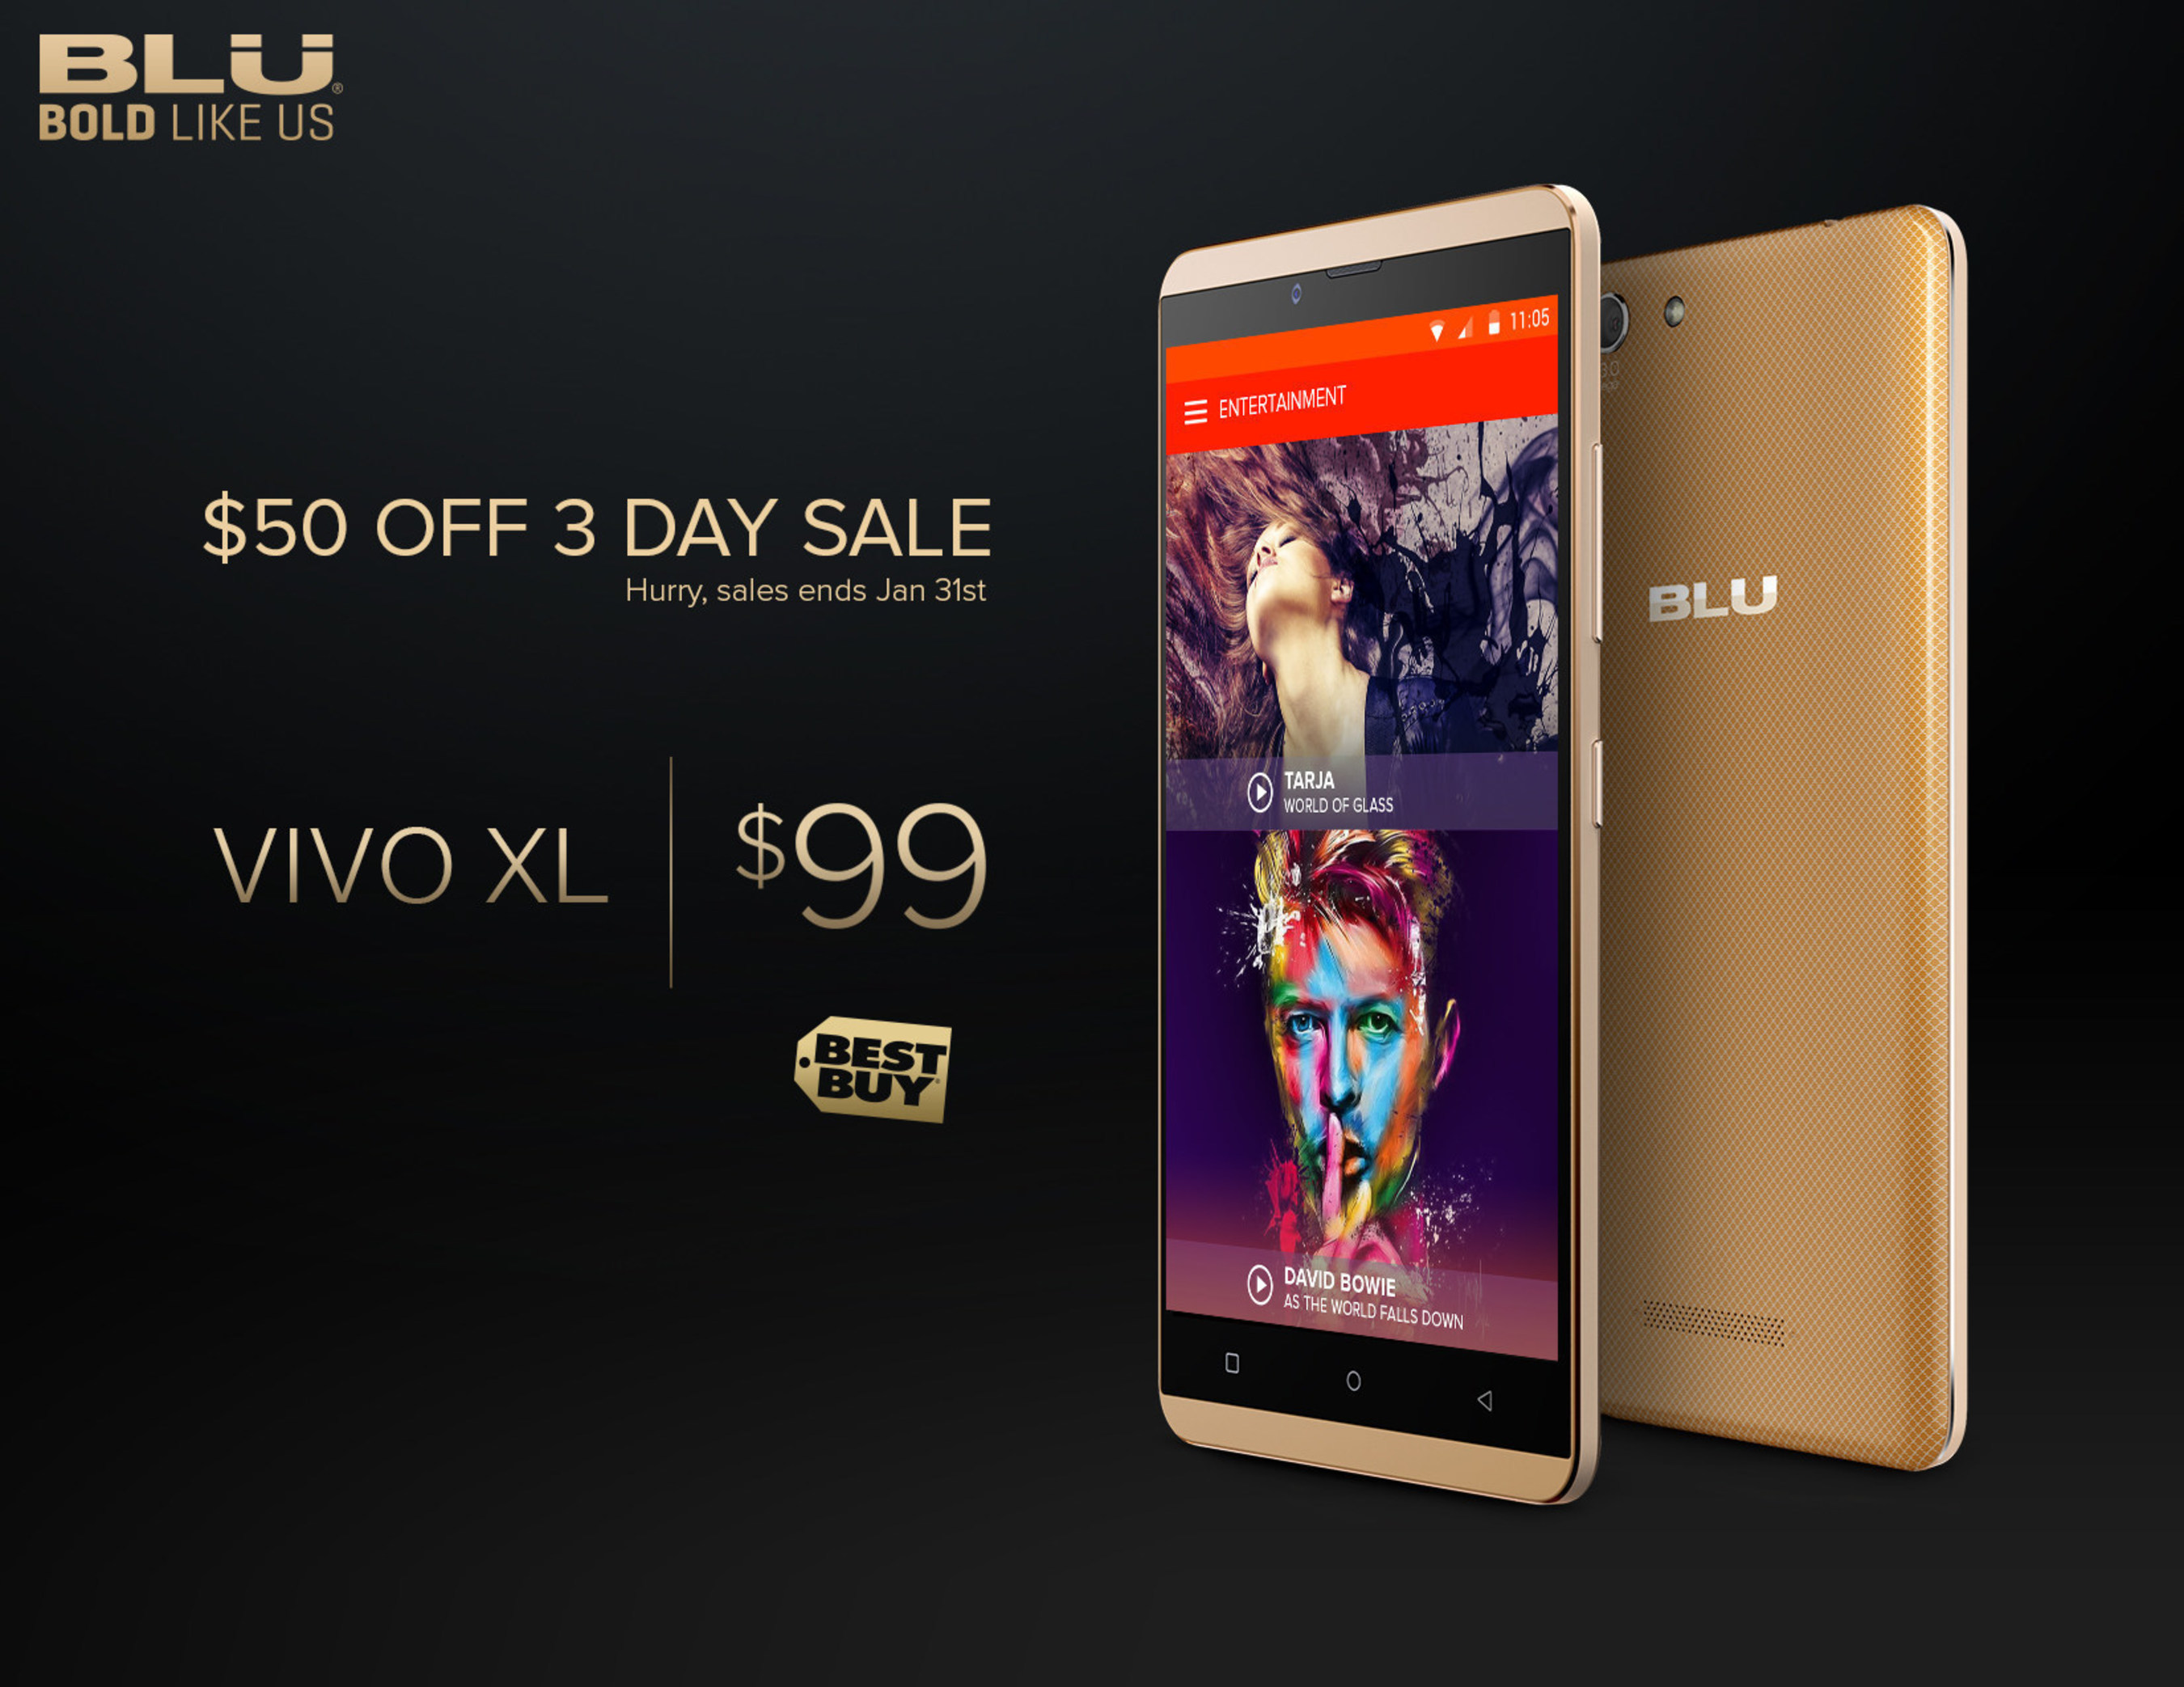 BLU Celebrates Availability of Latest BLU Vivo XL Smartphone with $50 Rebate - Limited Time Offer,